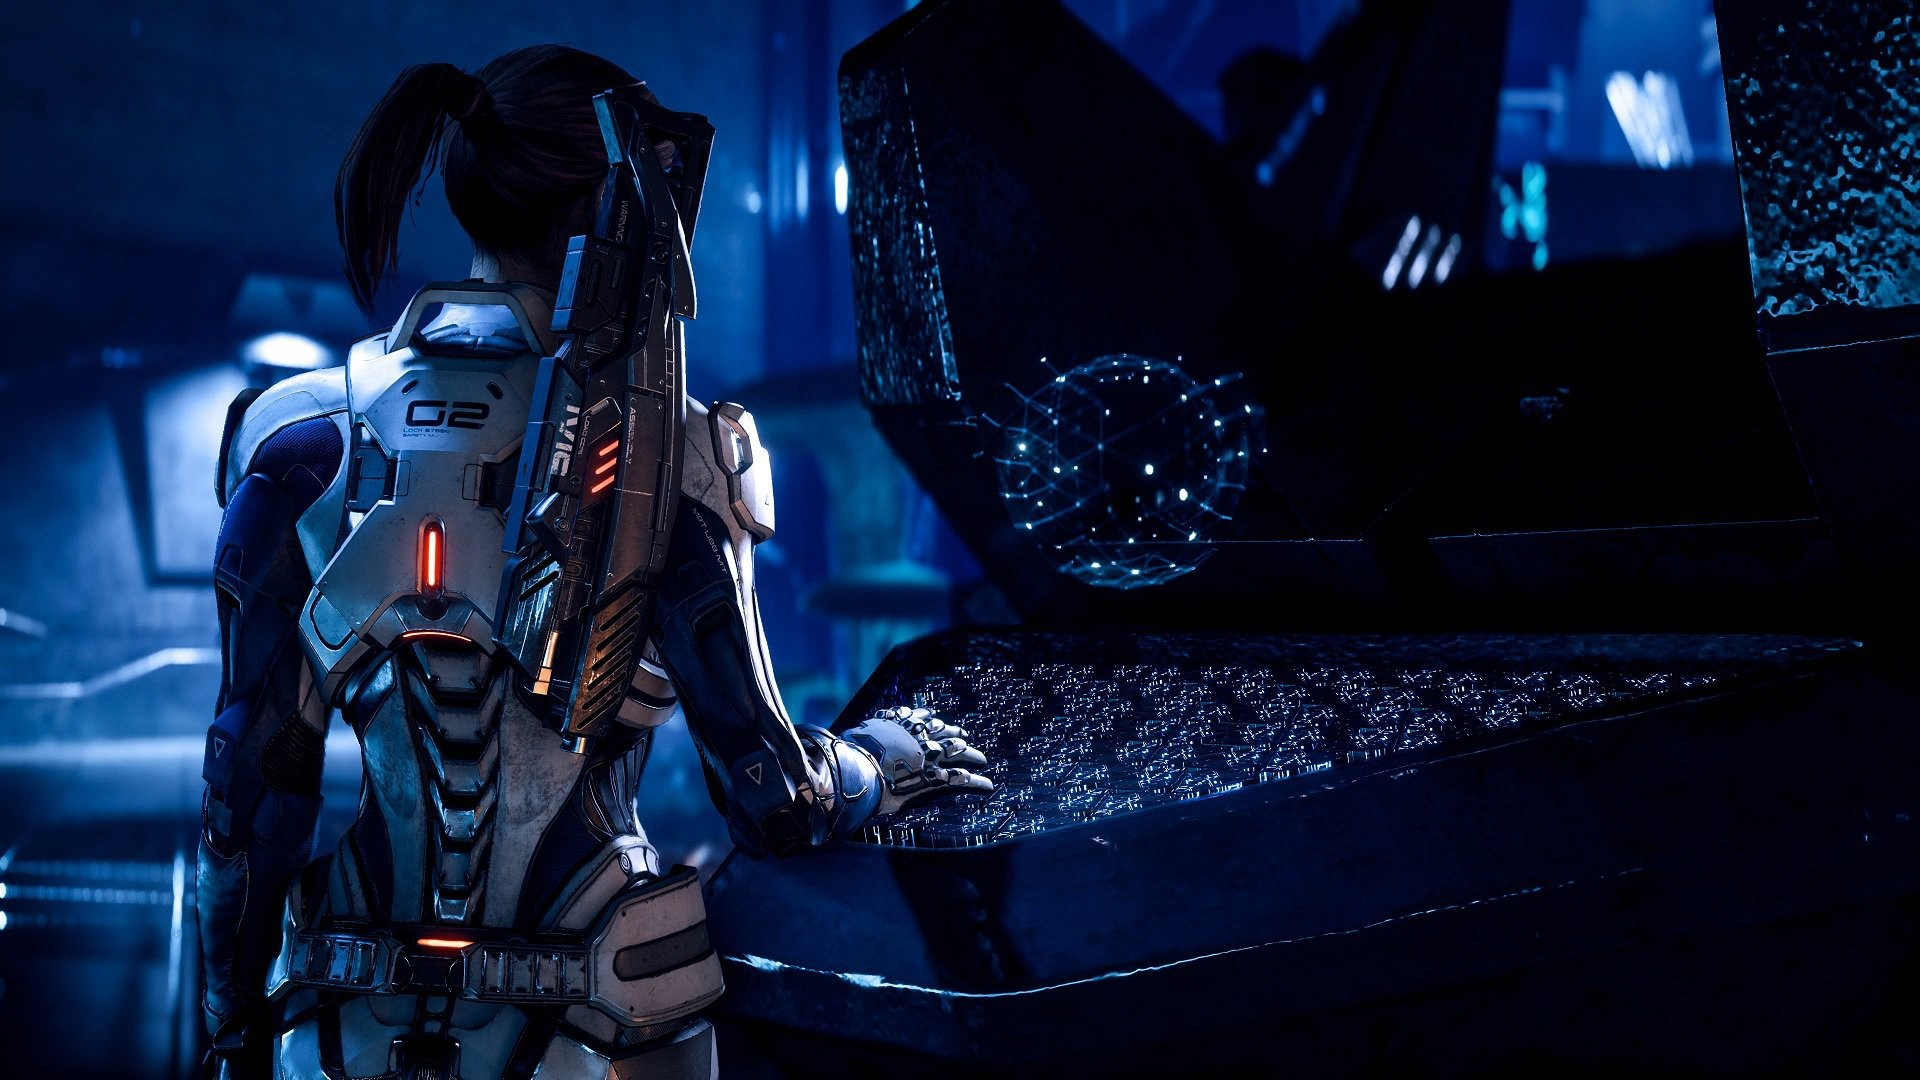 game, suit, Mass Effect: Andromeda